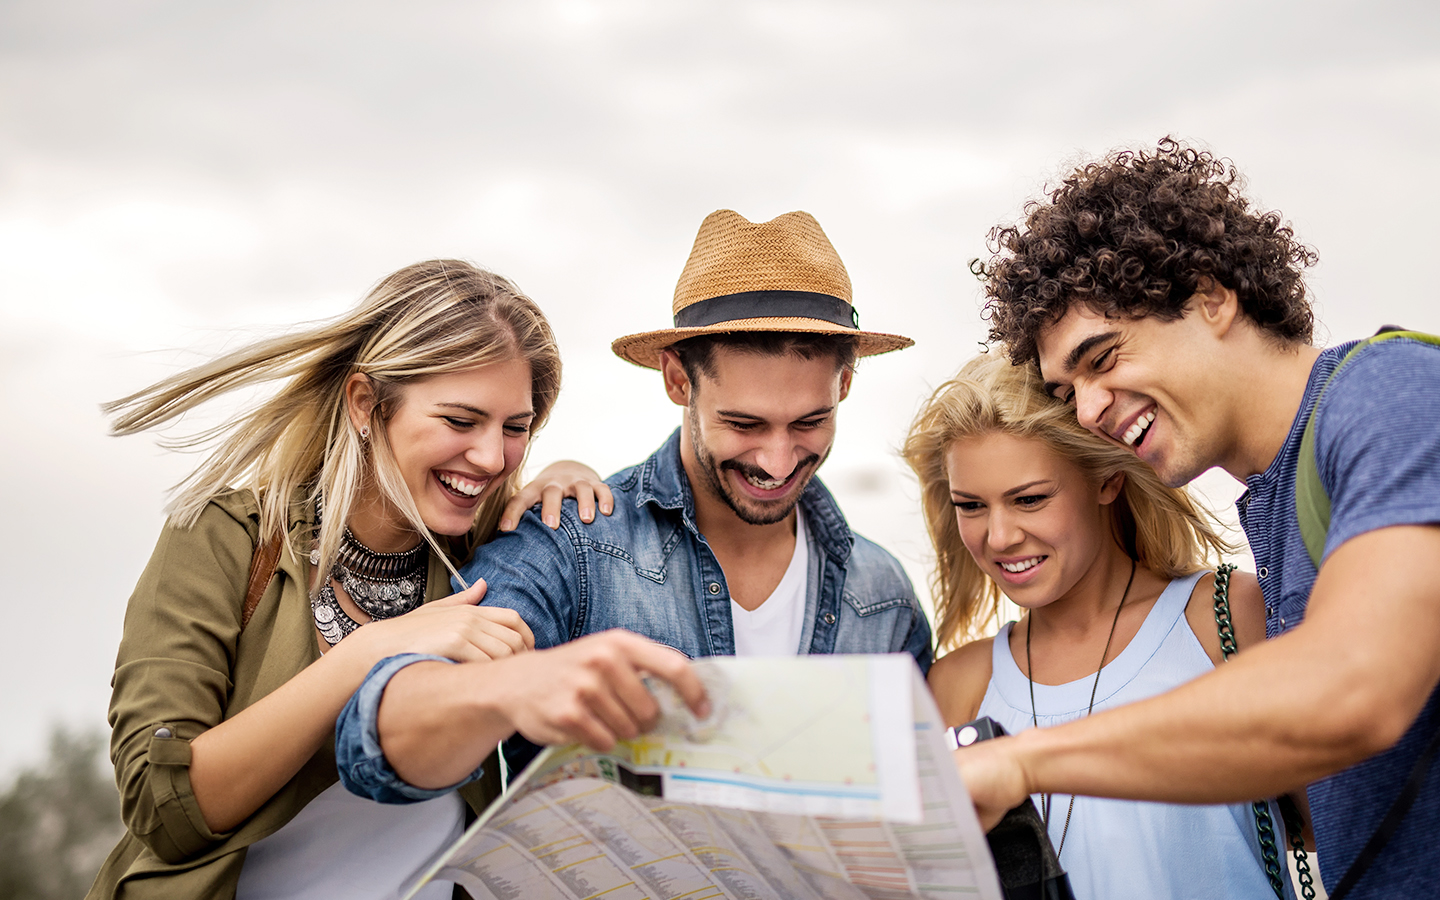 Traveling friends examine a map and smile